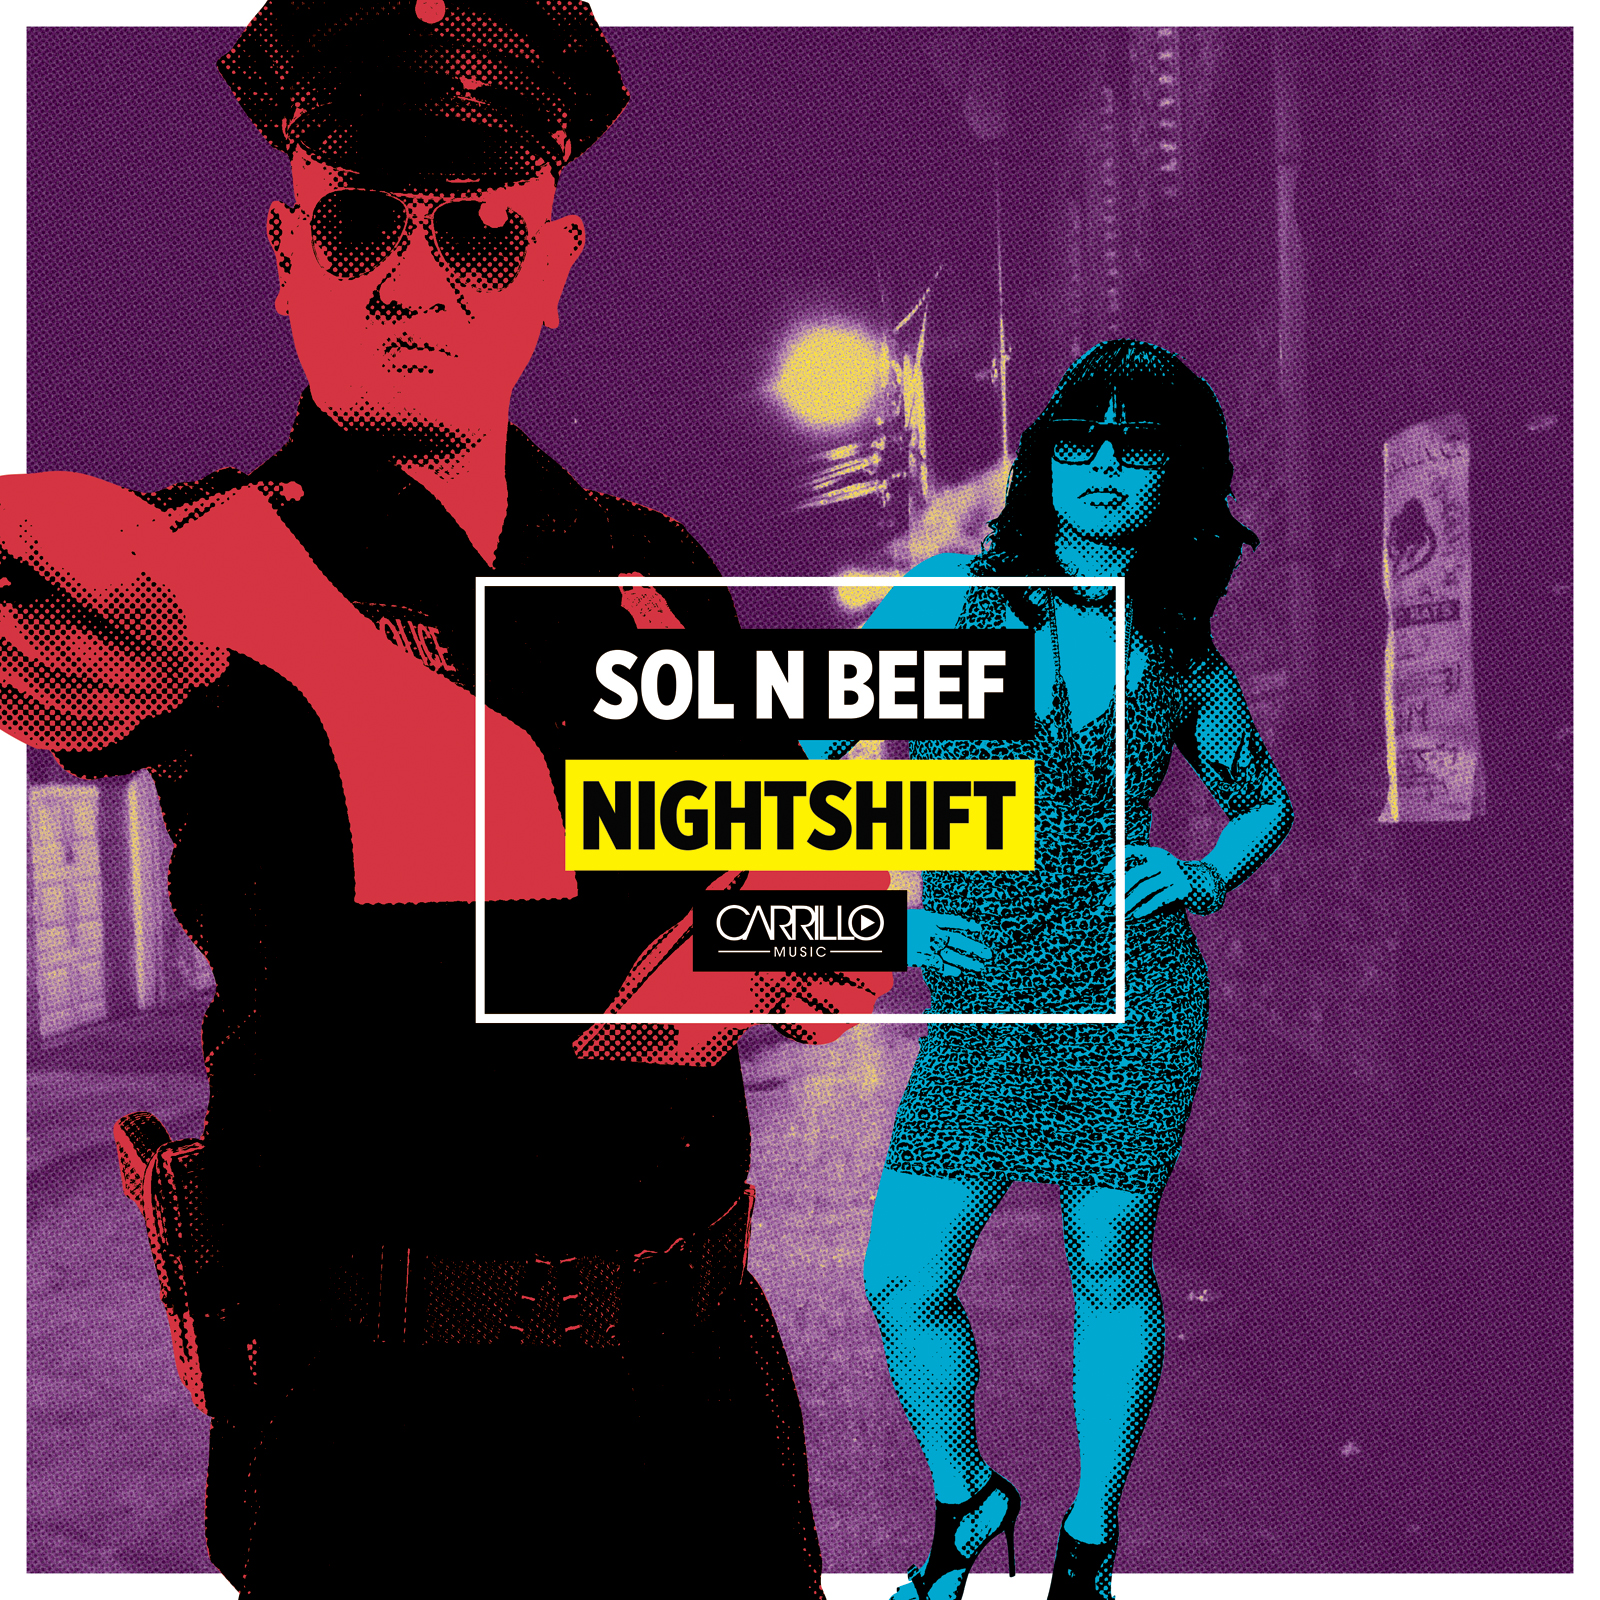 nightshift-sol-n-beef-cover